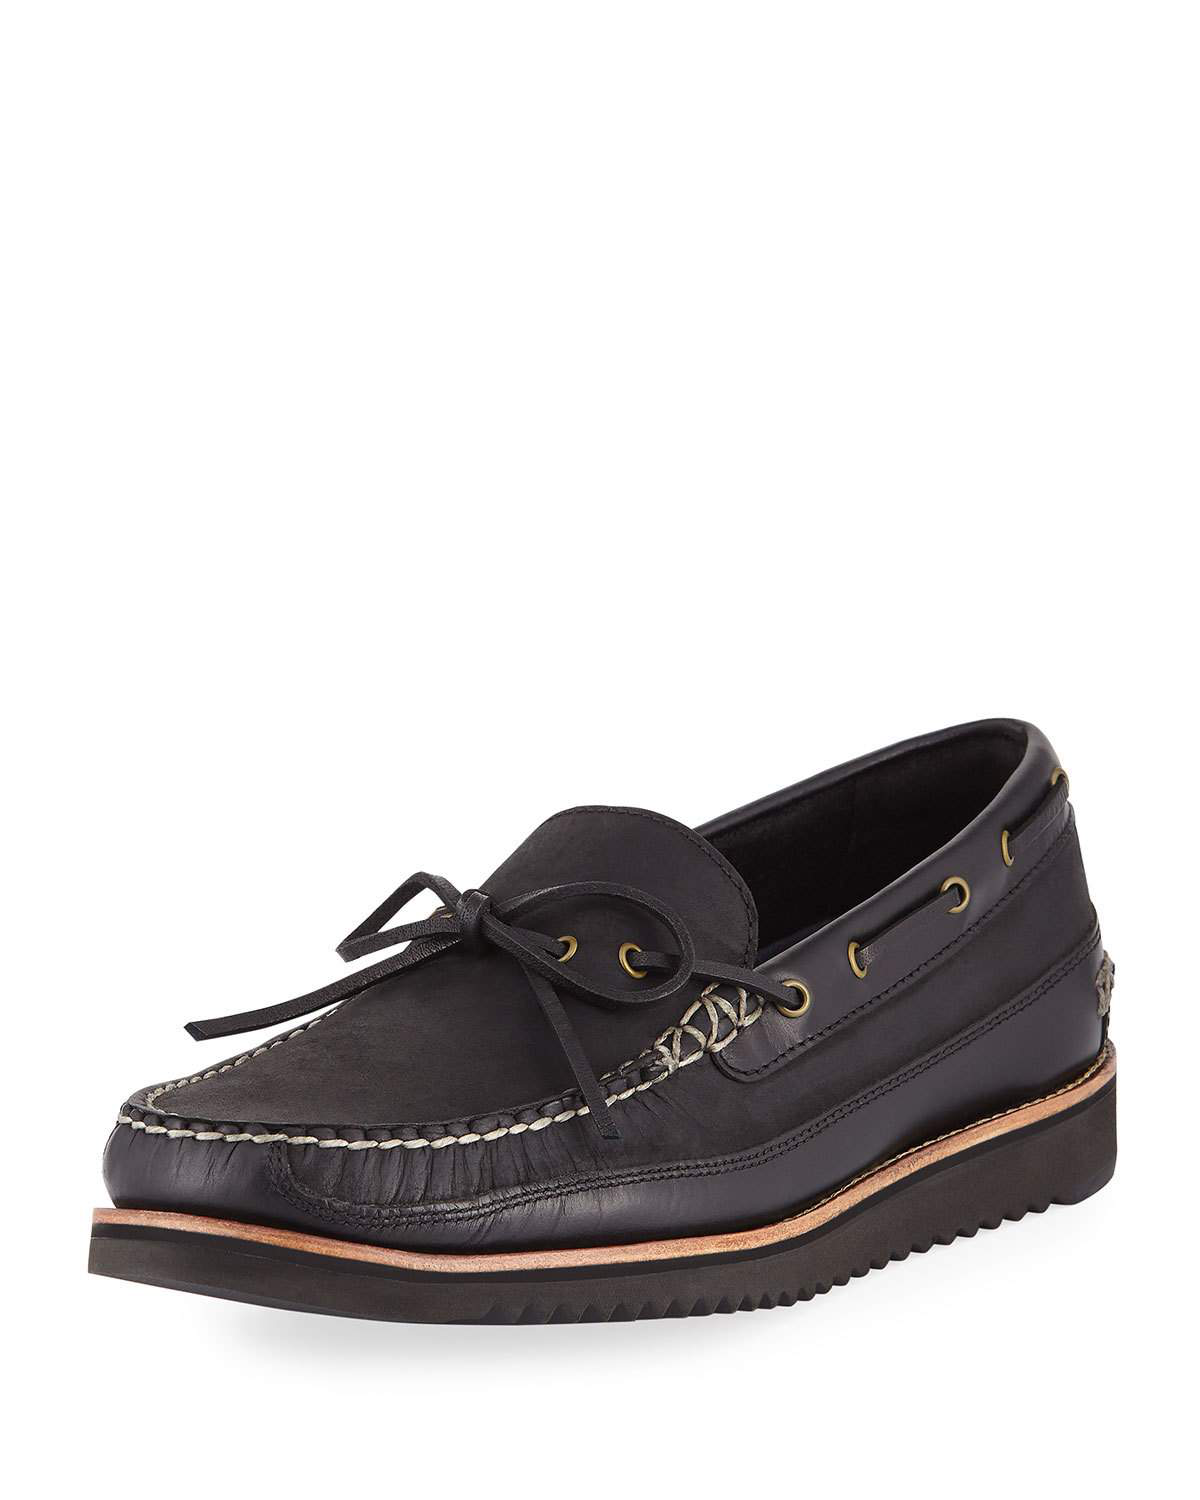 c13c9a653a2 Cole Haan Men s Pinch Rugged Camp Boat Shoes In Black